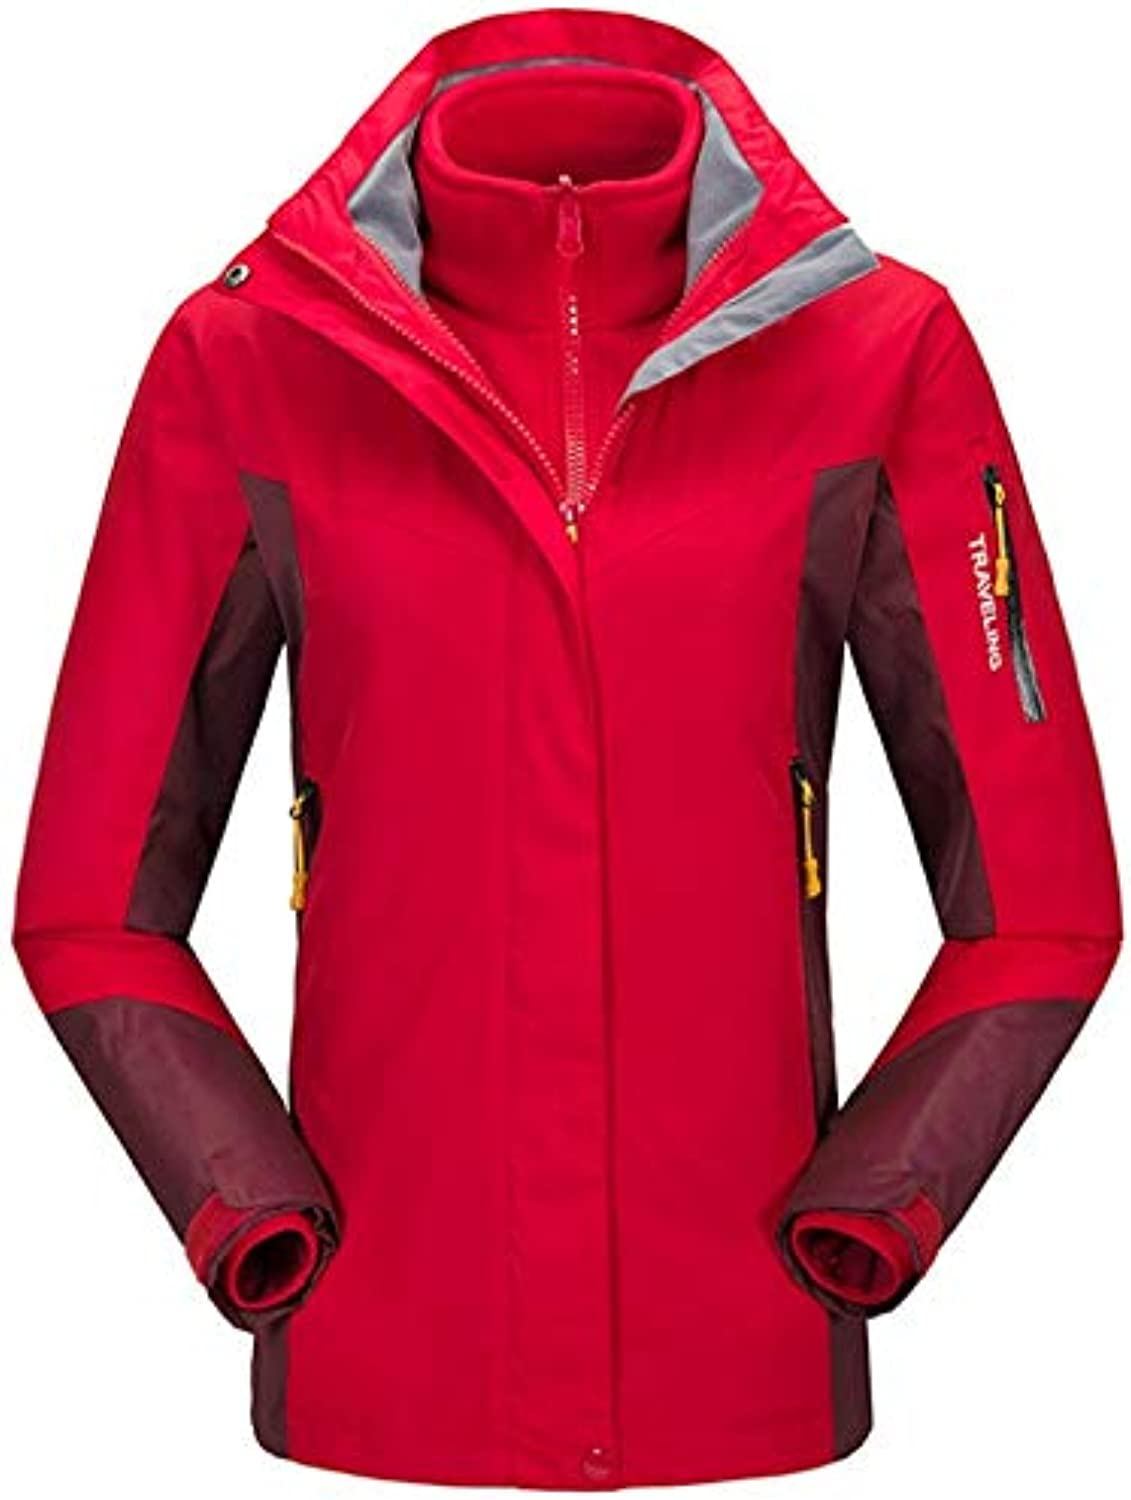 CEFULTY Winter Ladies Outdoor Service Jacket Threeinone TwoPiece Windproof Breathable Sports Mountaineering (color   03, Size   L)